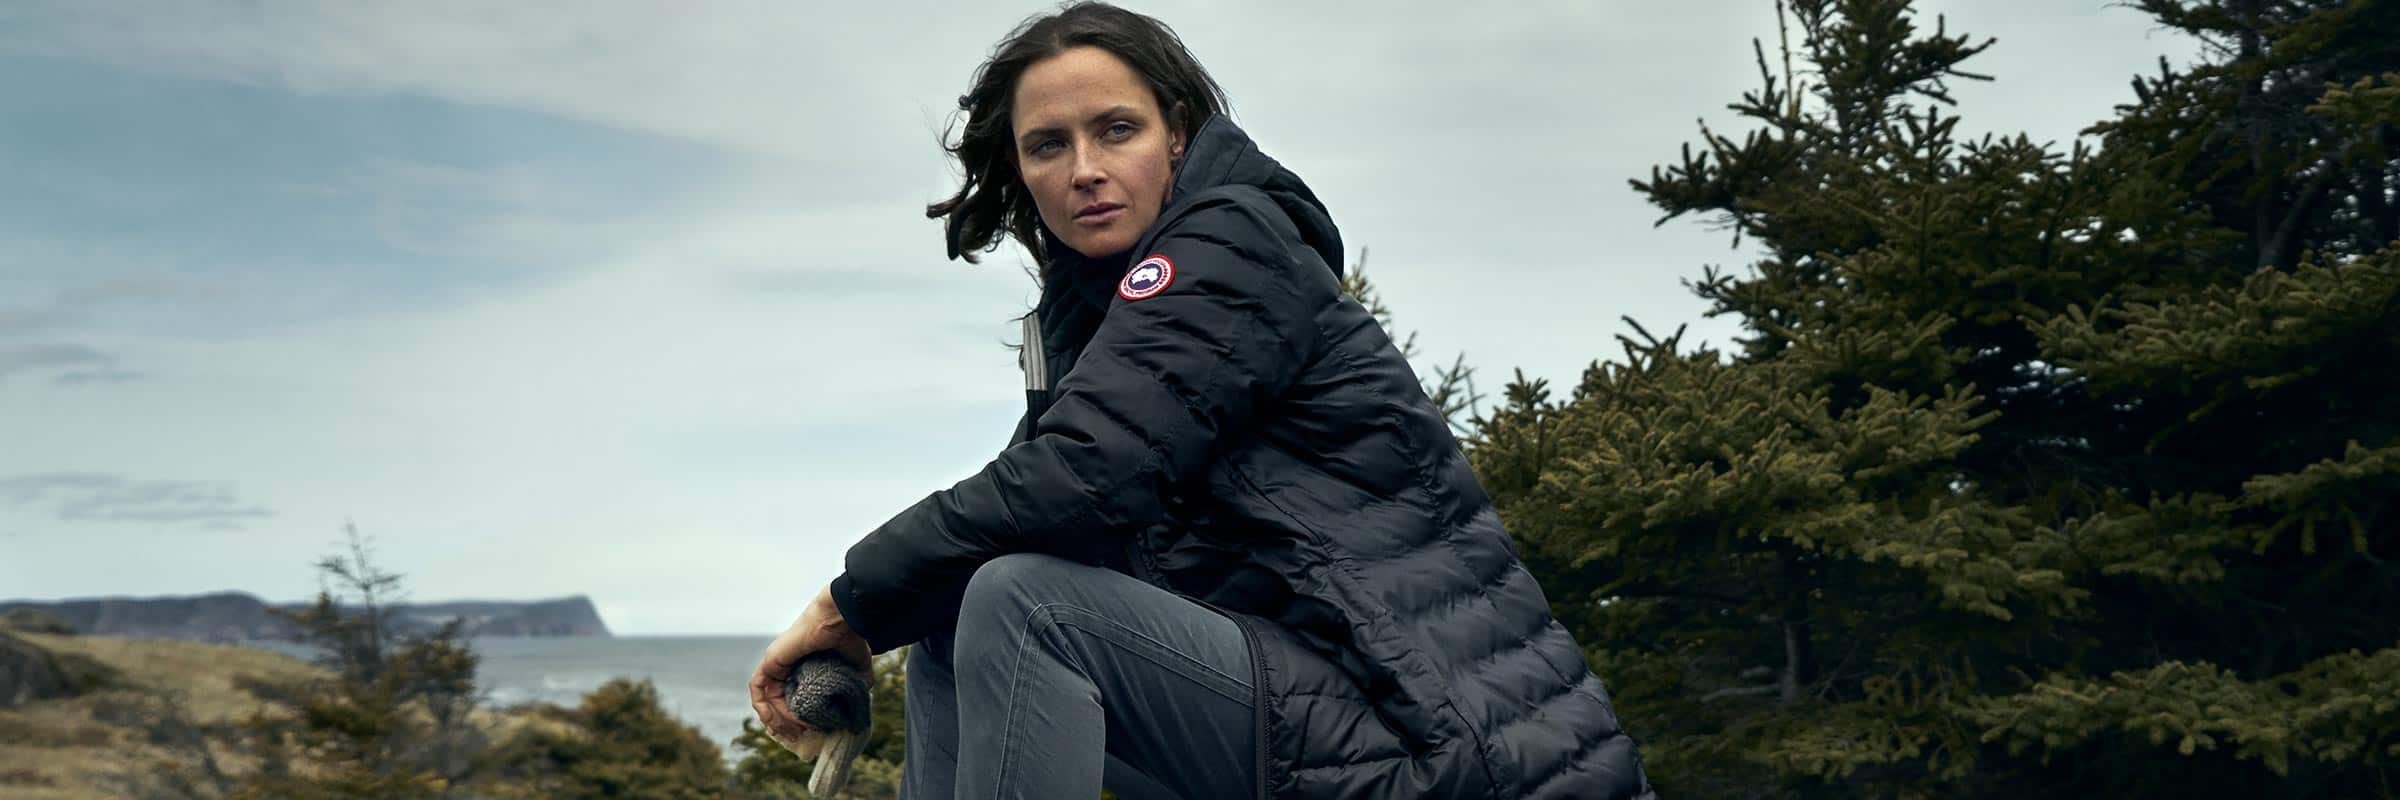 Canada Goose. Canada Goose Best Lightweight Down Jackets